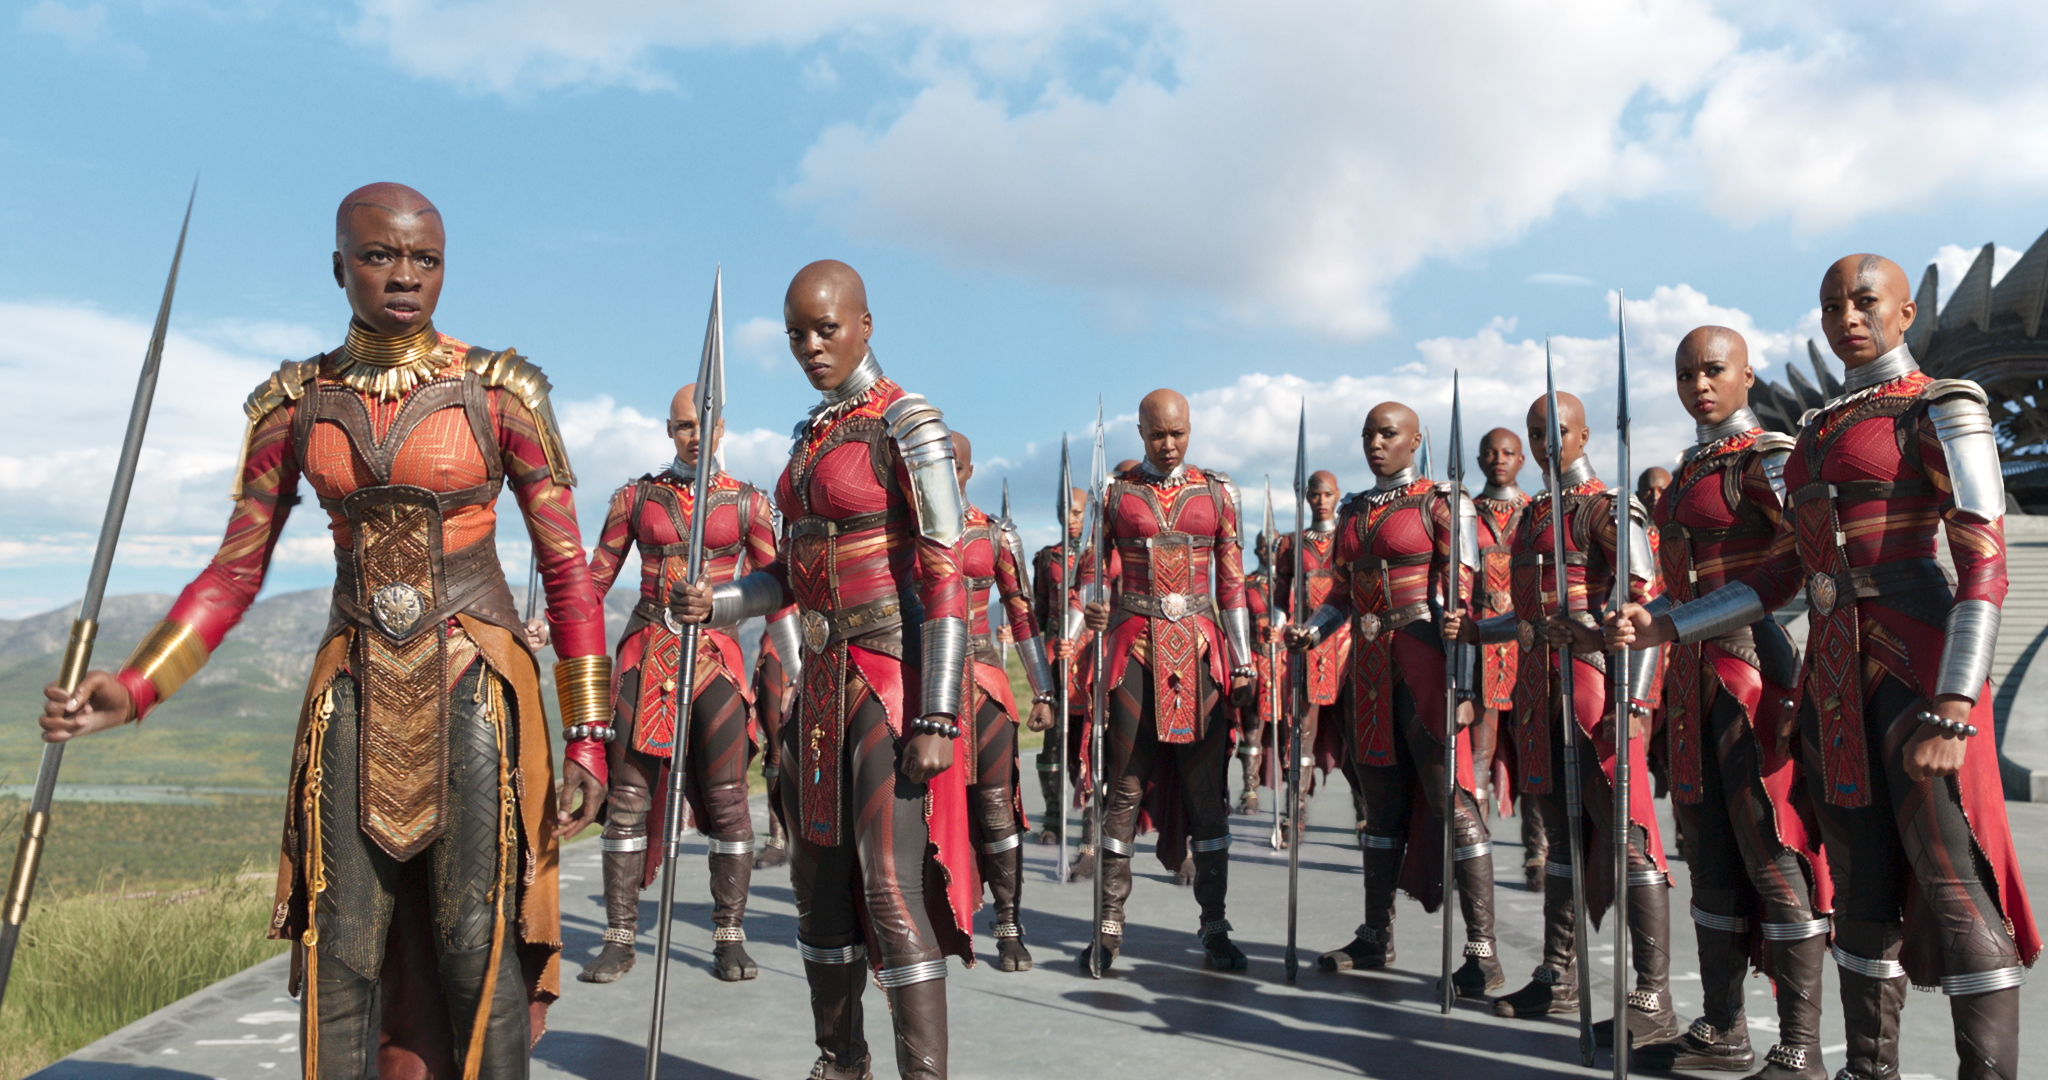 Joy Reid: 'Black Panther' envisions what could have been for black Americans